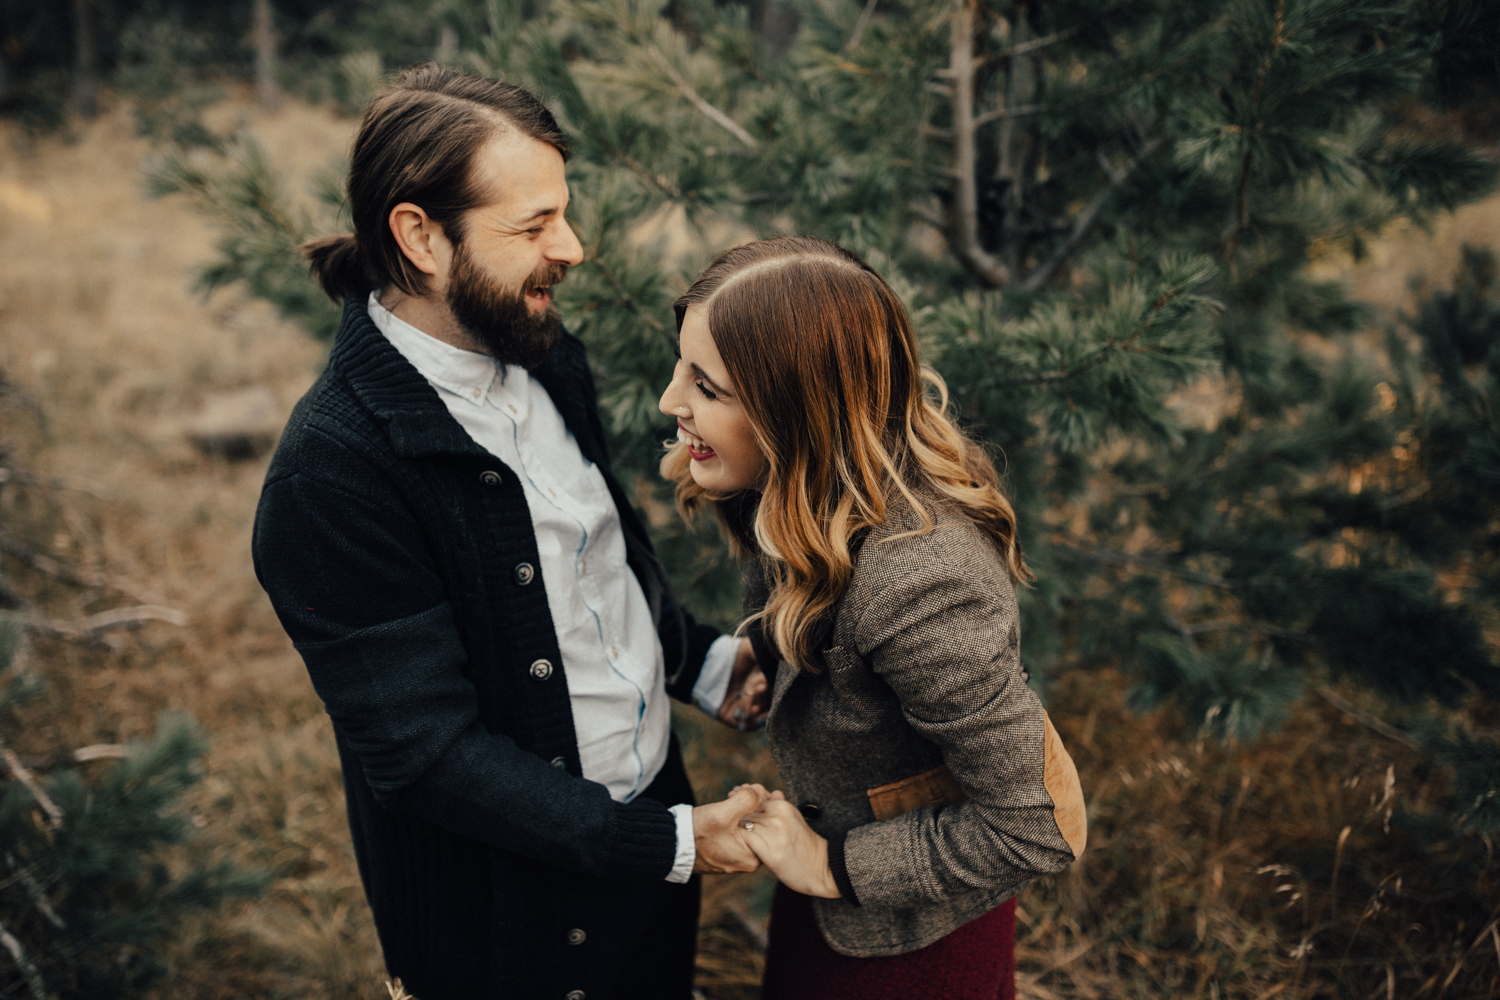 Katie_Jon_Forest_Engagement (11).jpg